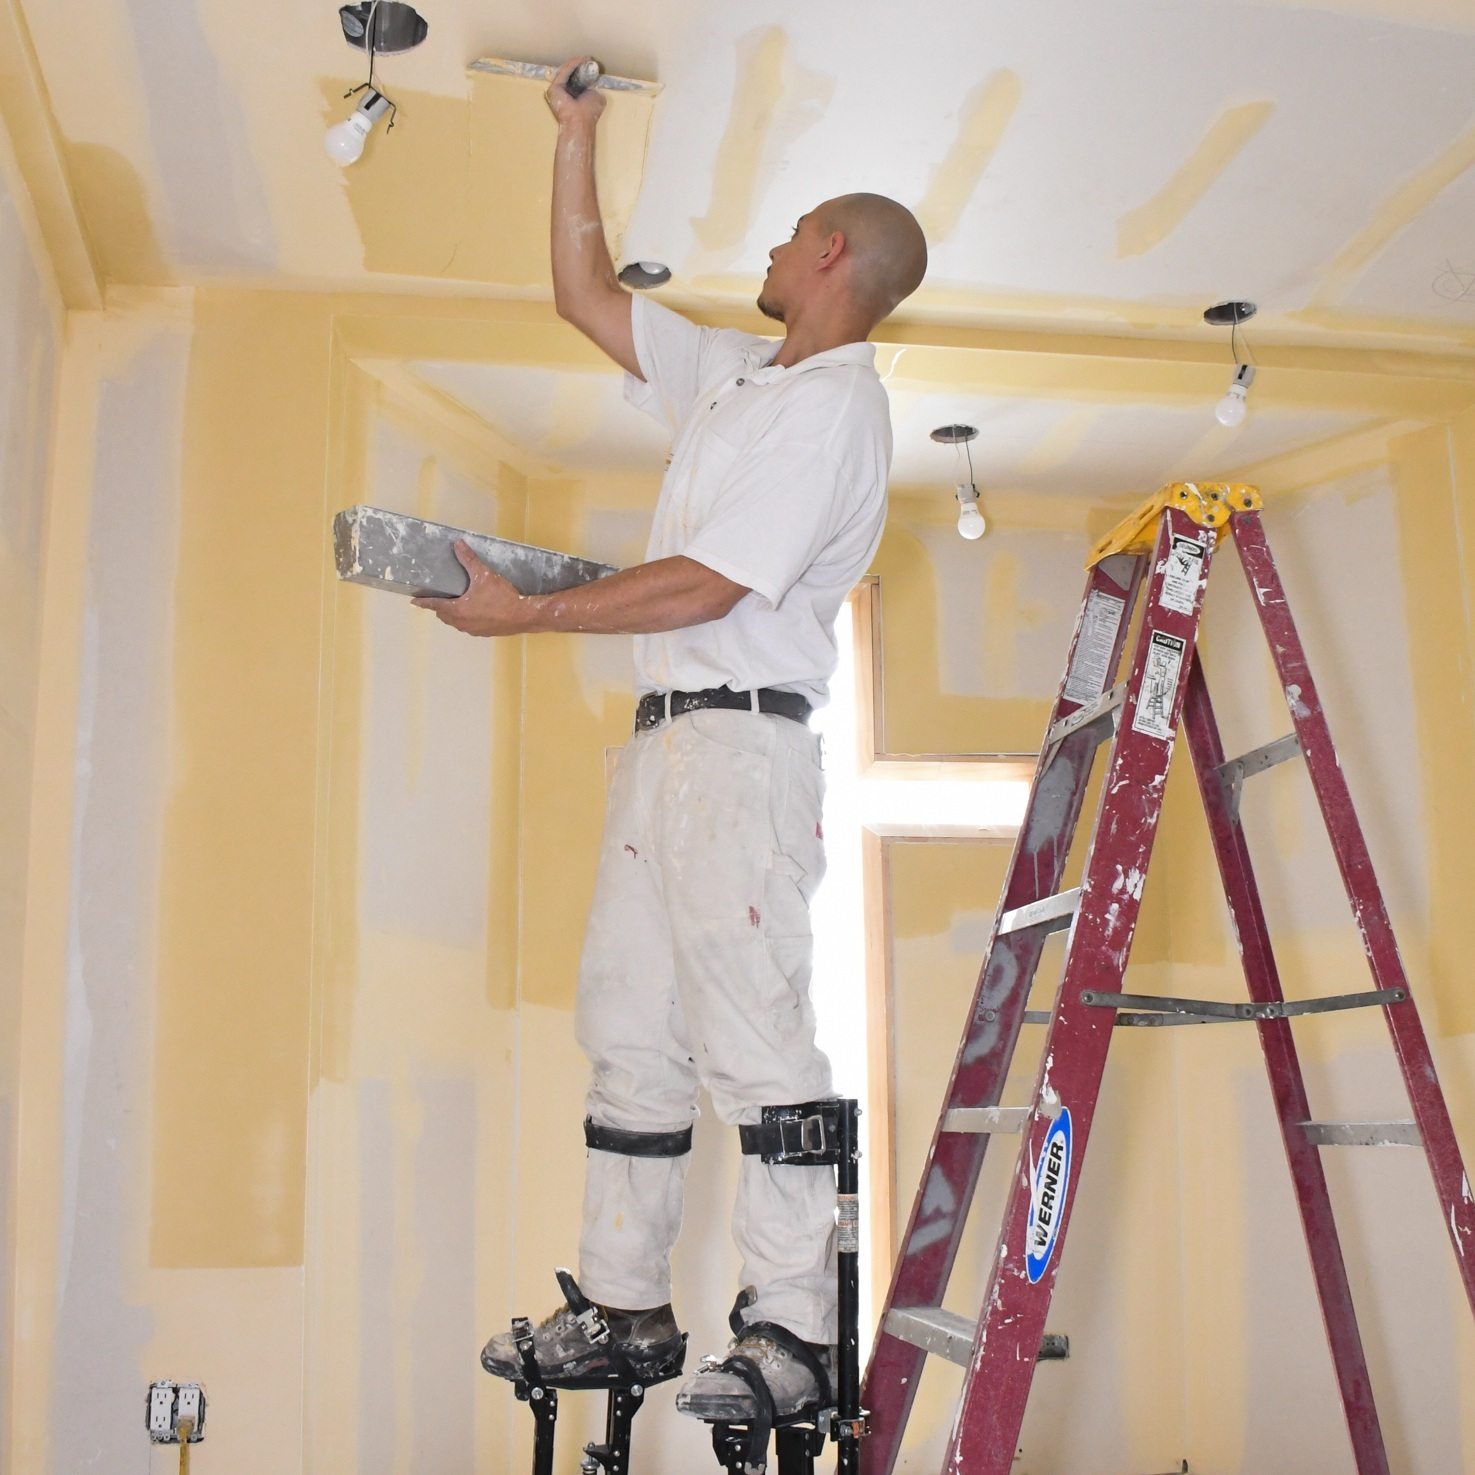 DRYWALL FINISHING - • Proper Mudding and Taping techniques for production• Spray application of joint compound• Pump/Spray maintenance and cleaning• Automatic Taping Tools• (5) Levels of Drywall Finishes